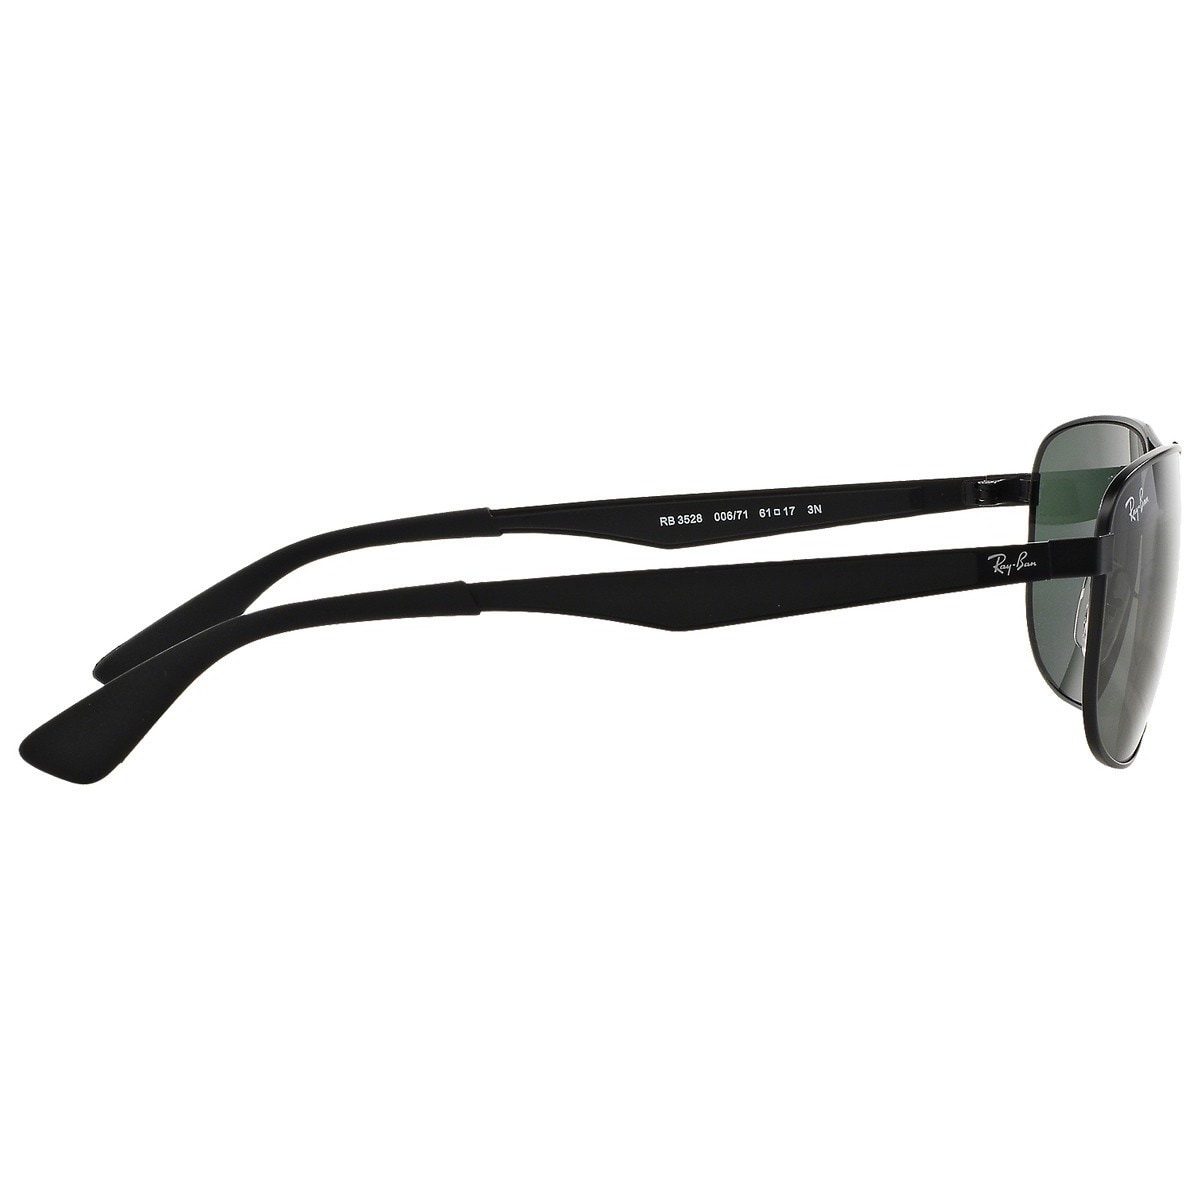 11f0658ffdbe7 Shop Ray-Ban RB3528 006 71 Black Frame Green Classic 61mm Lens Sunglasses -  Free Shipping Today - Overstock - 14431344